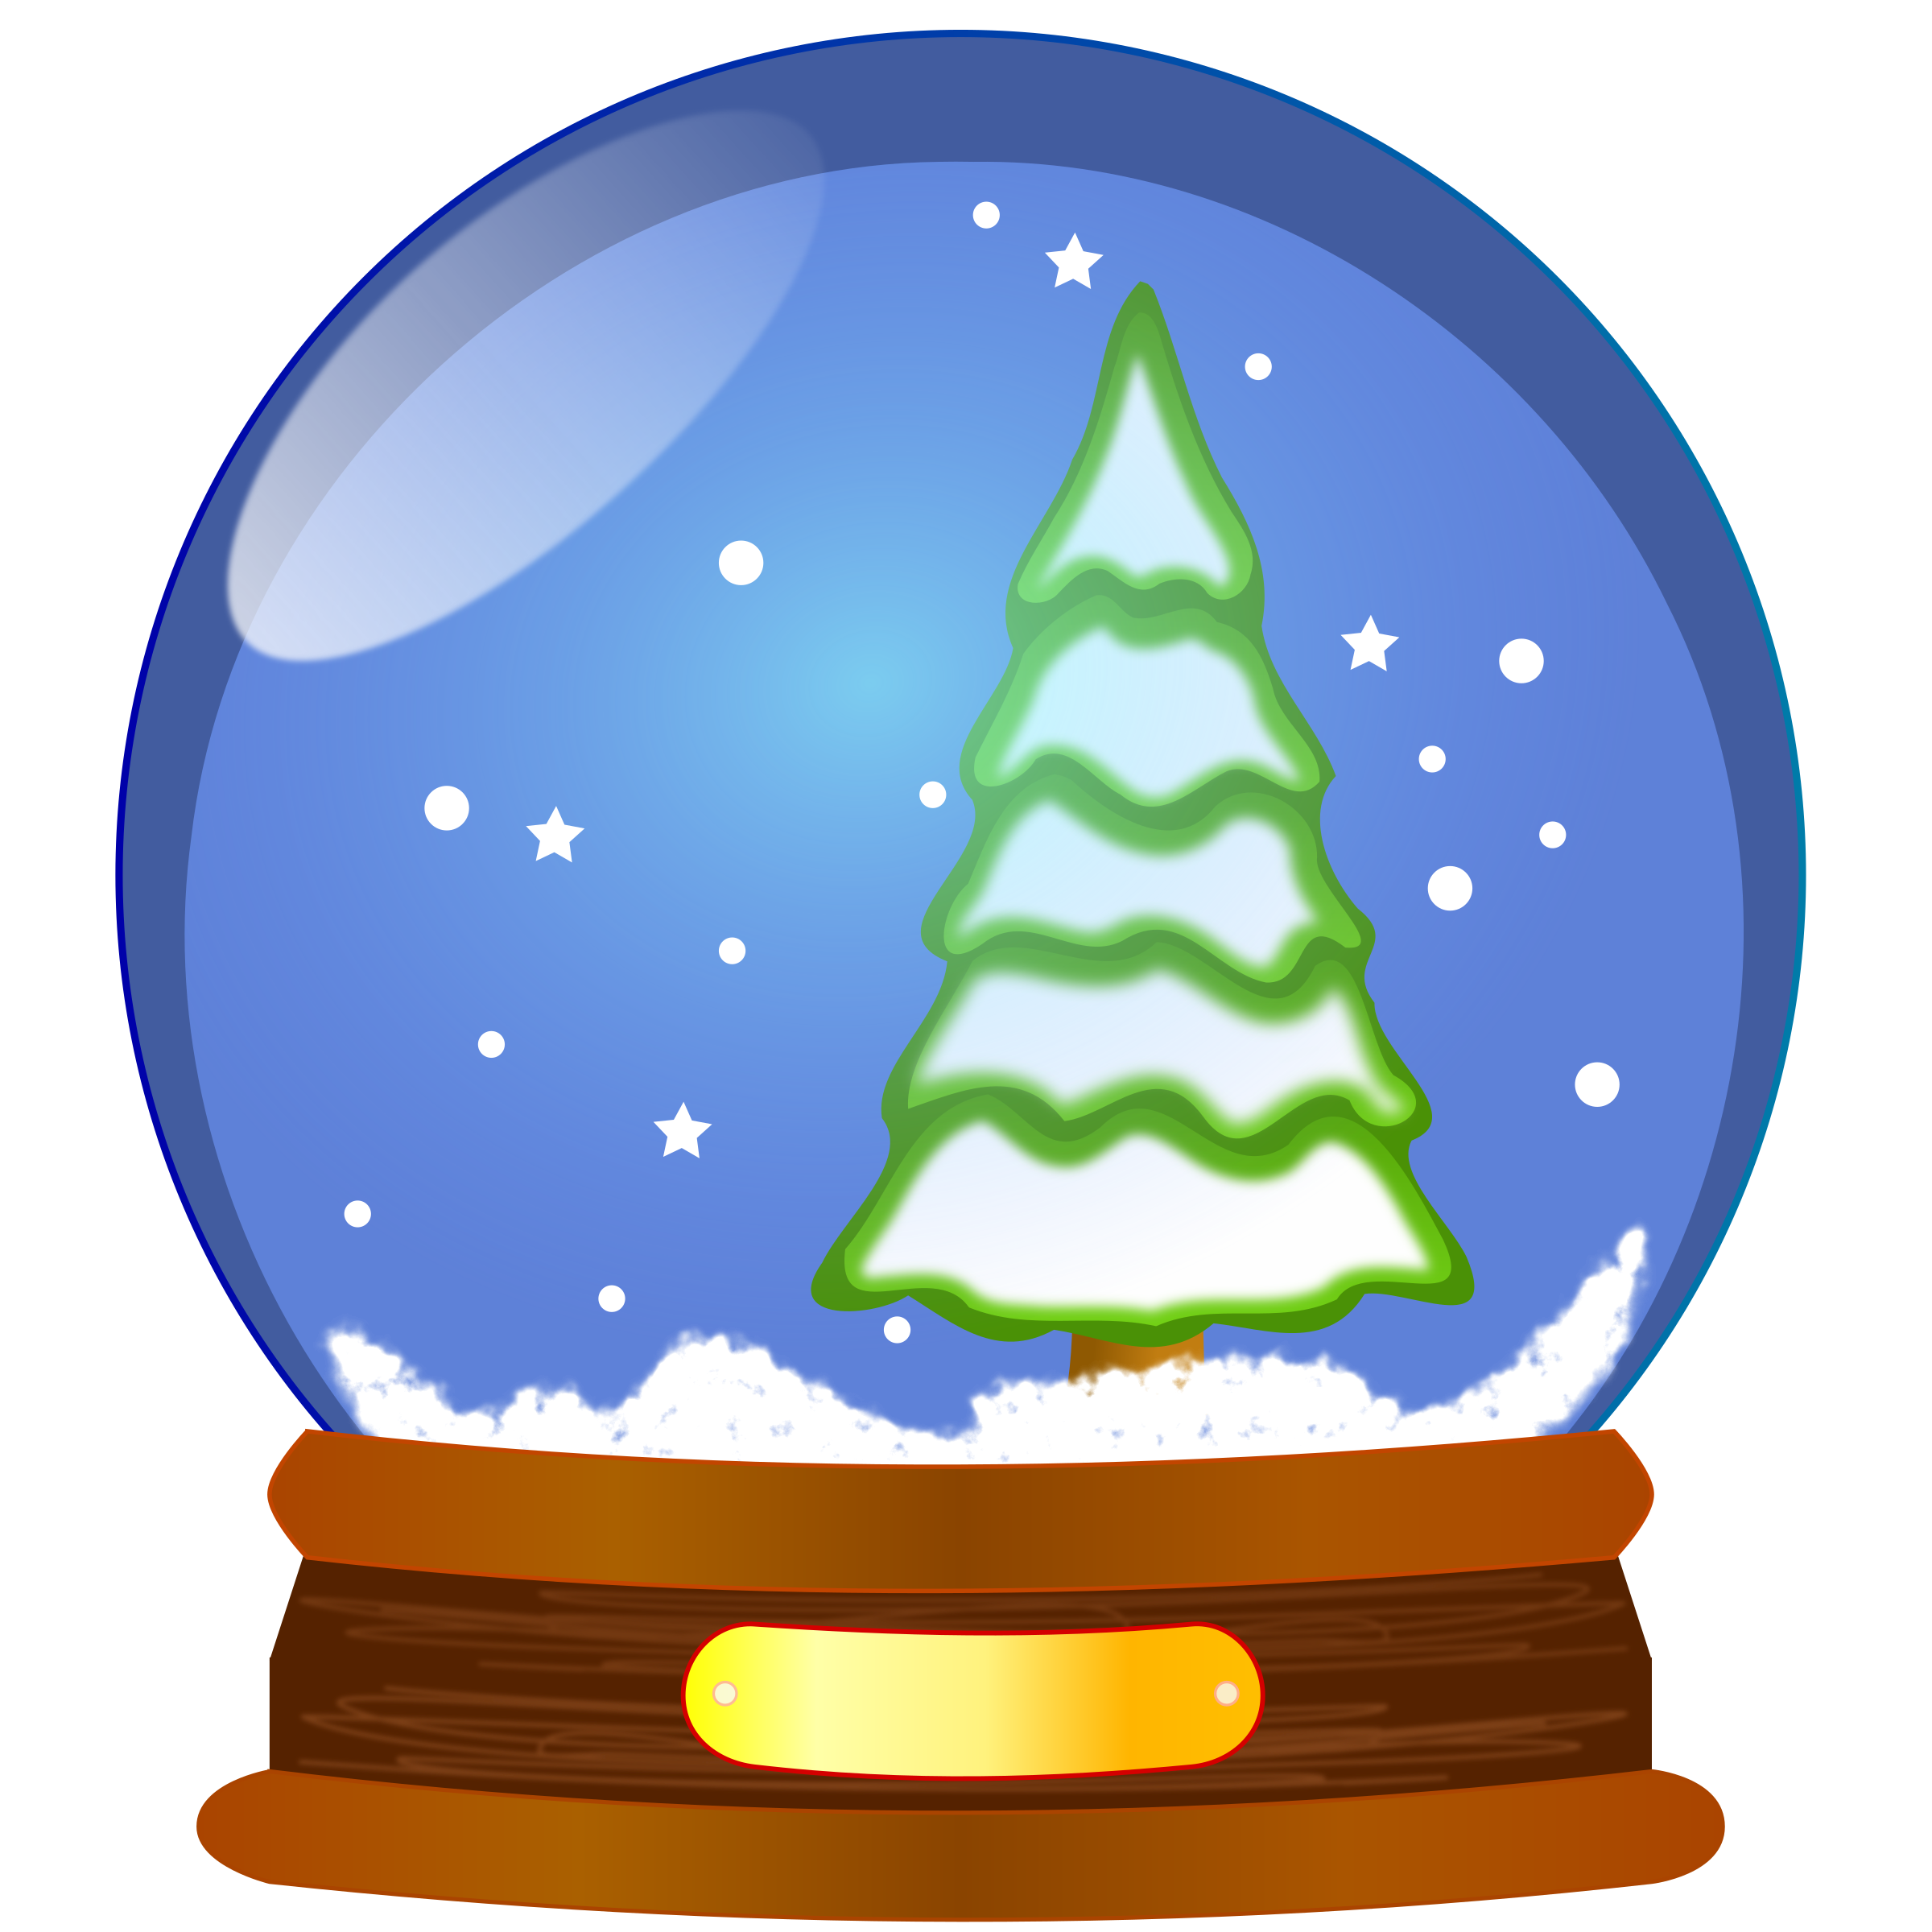 snow globe by uwesch